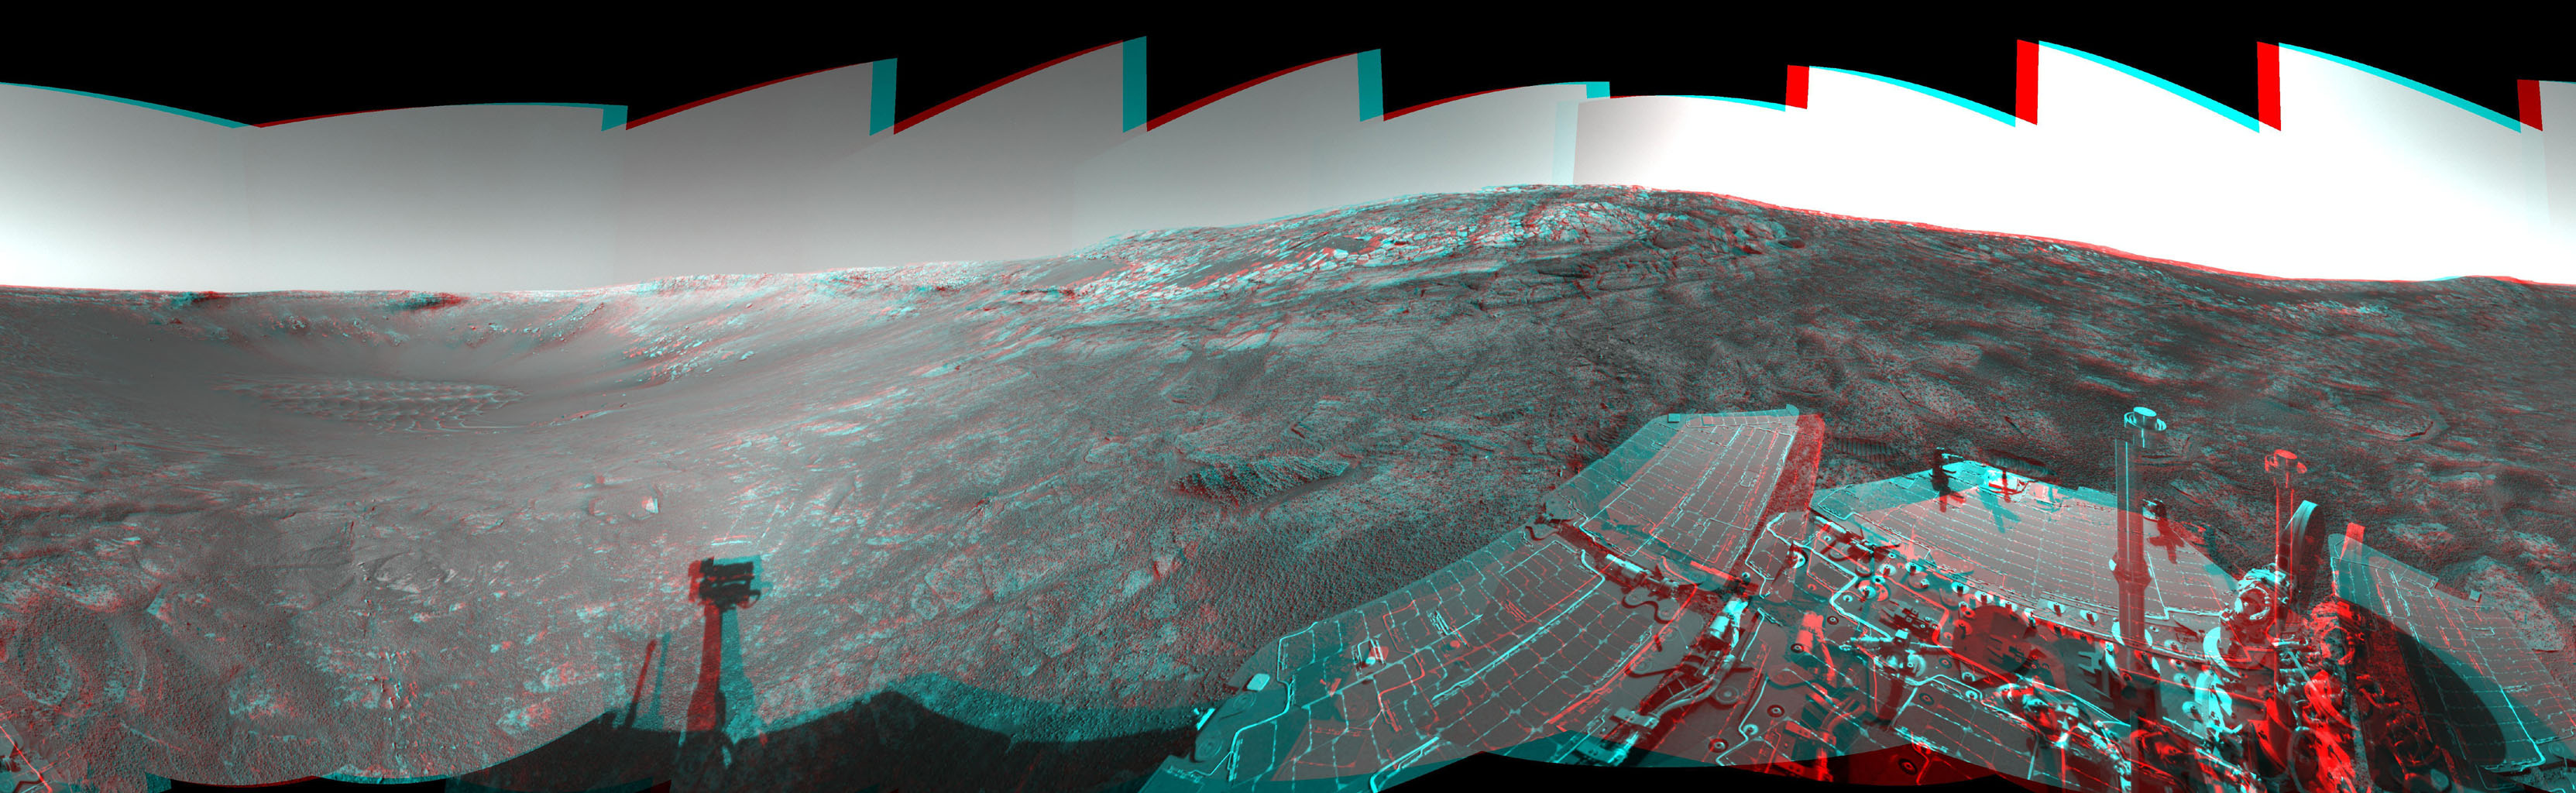 This 360-degree stereo anaglyph of the terrain surrounding NASA's Mars Exploration Rover Opportunity was taken on the rover's 171st sol on Mars. Opportunity had driven 11 meters (36 feet) into 'Endurance Crater.' 3D glasses are necessary.